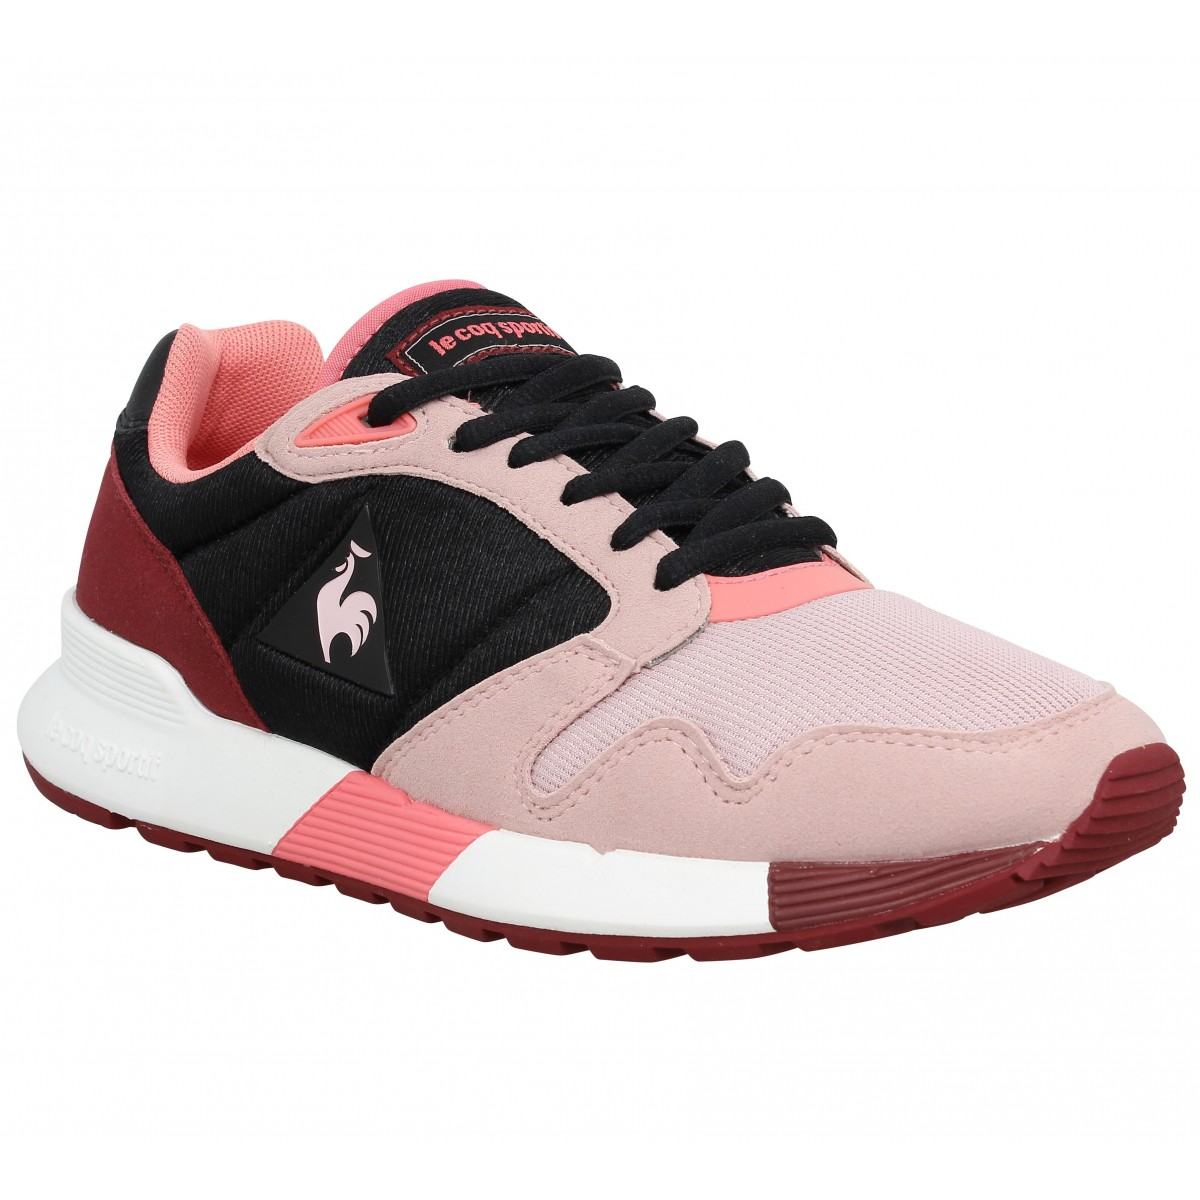 le coq sportif chaussures pour femme vente en ligne. Black Bedroom Furniture Sets. Home Design Ideas